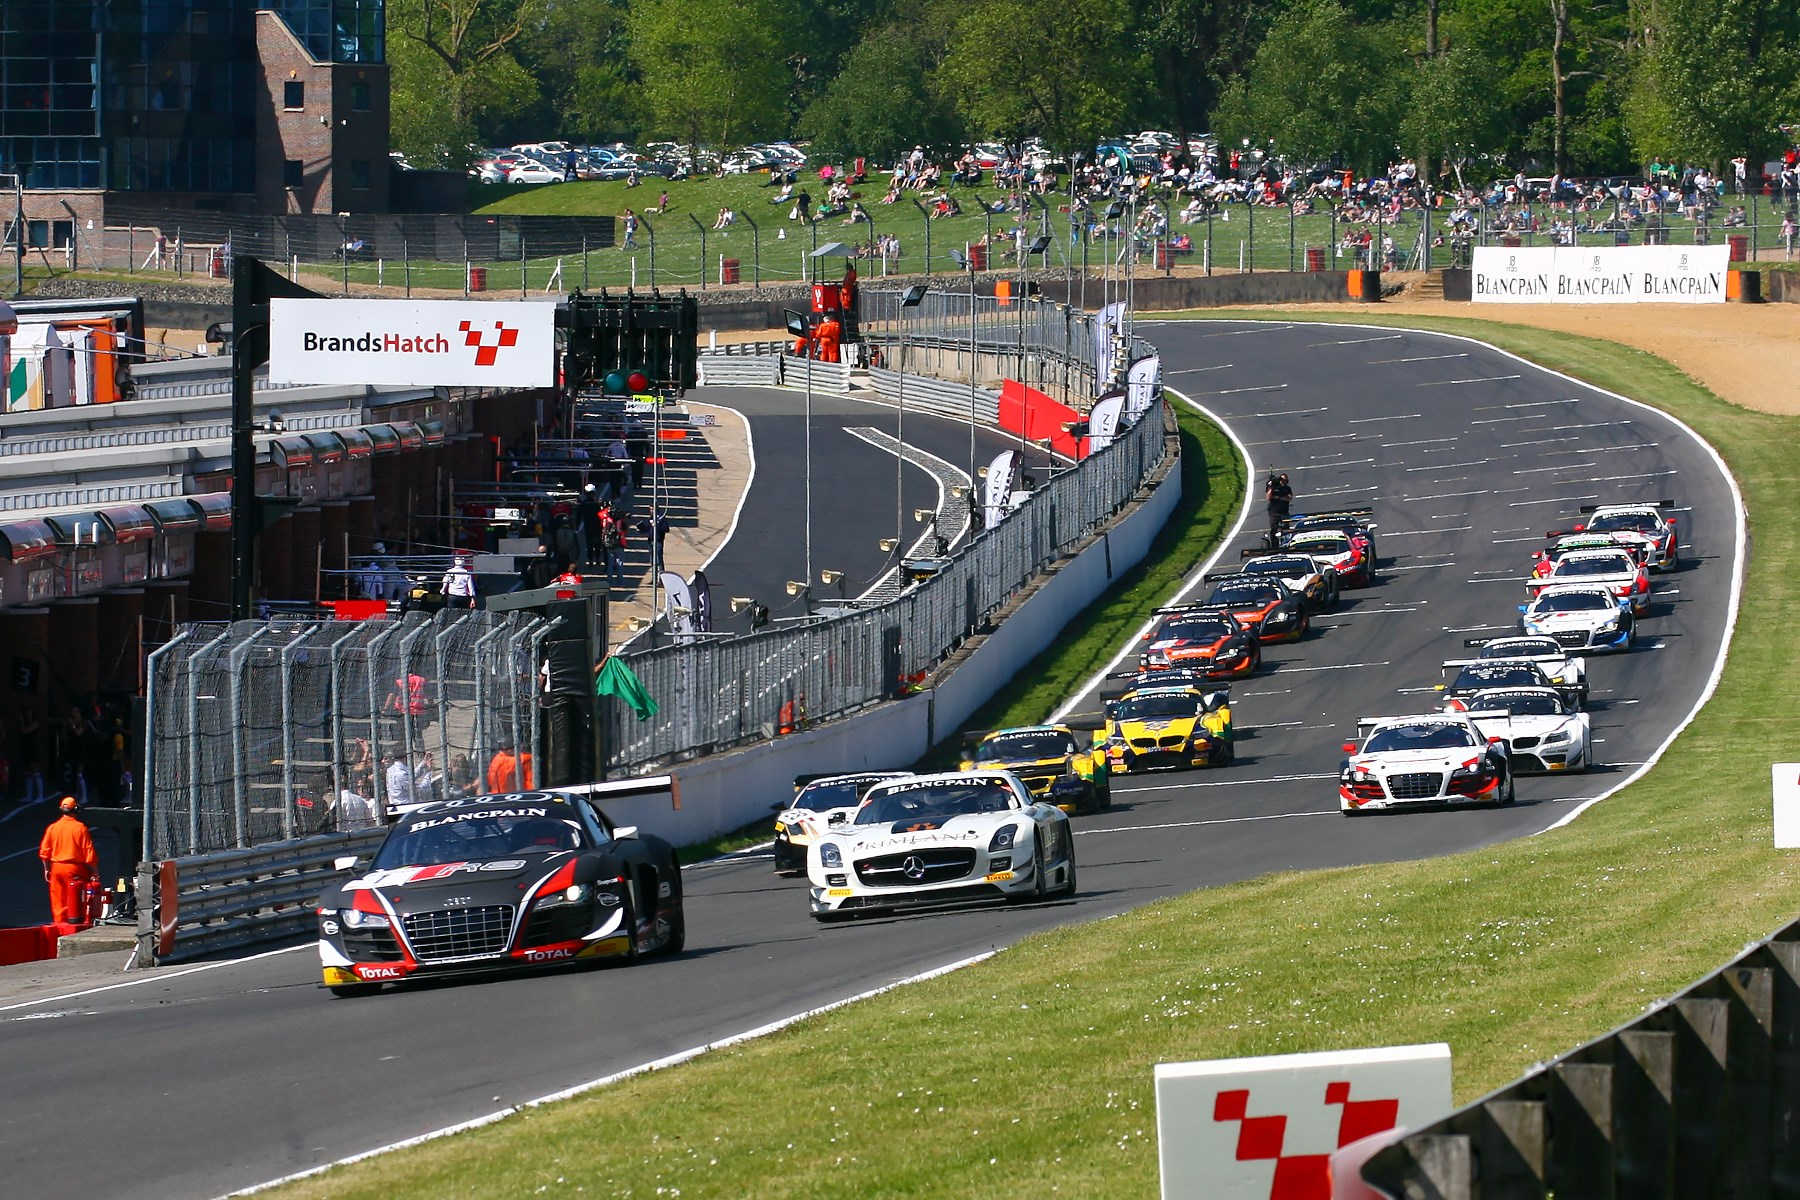 MotorSport Vision Racing (MSVR) - the race and event organising division of MSV